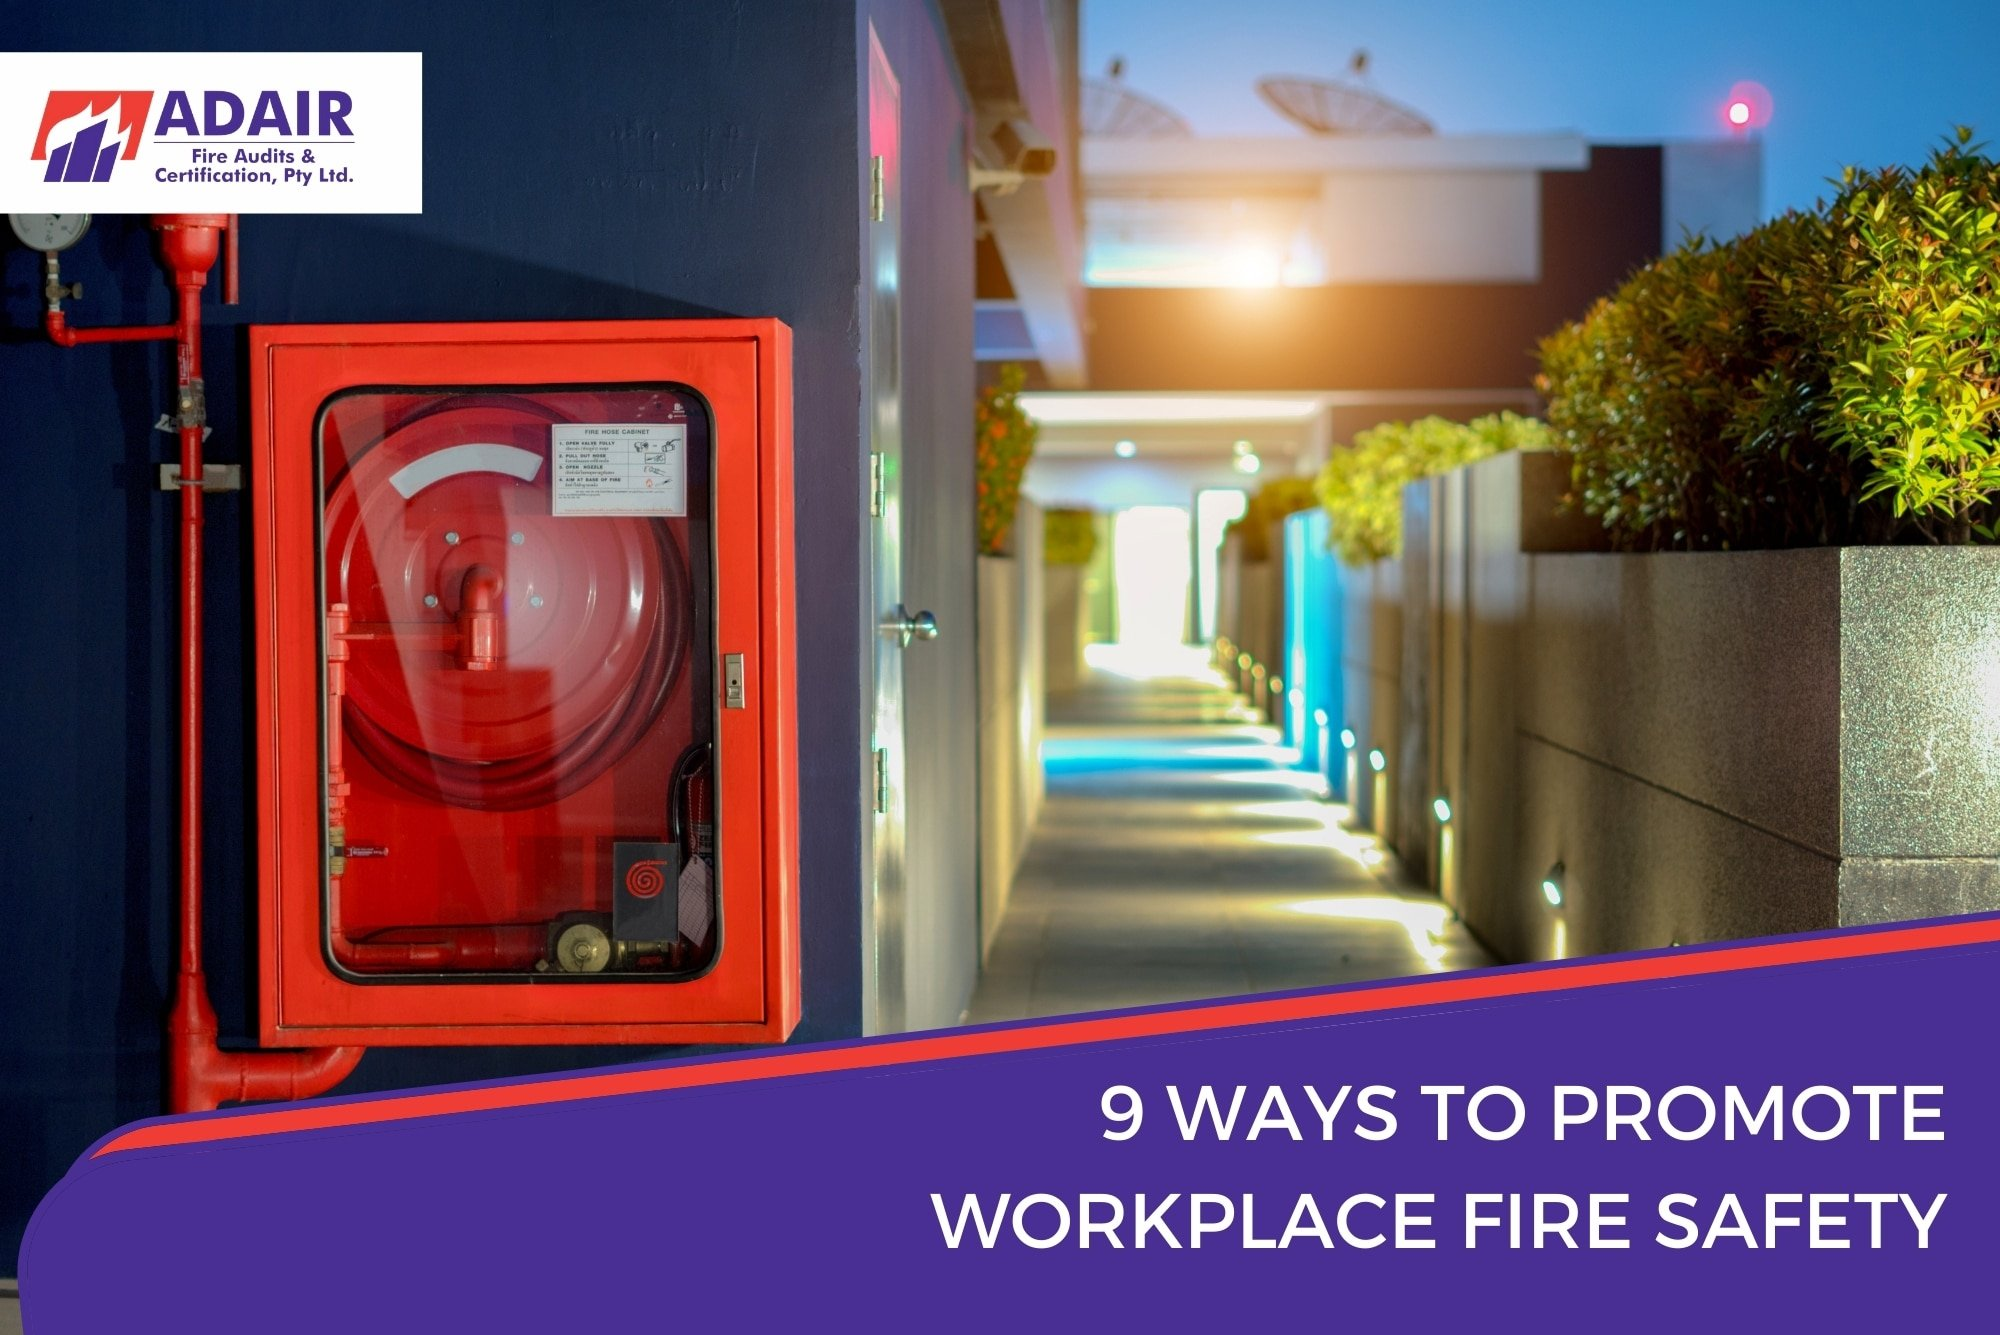 9 Ways to Promote Workplace Fire Safety